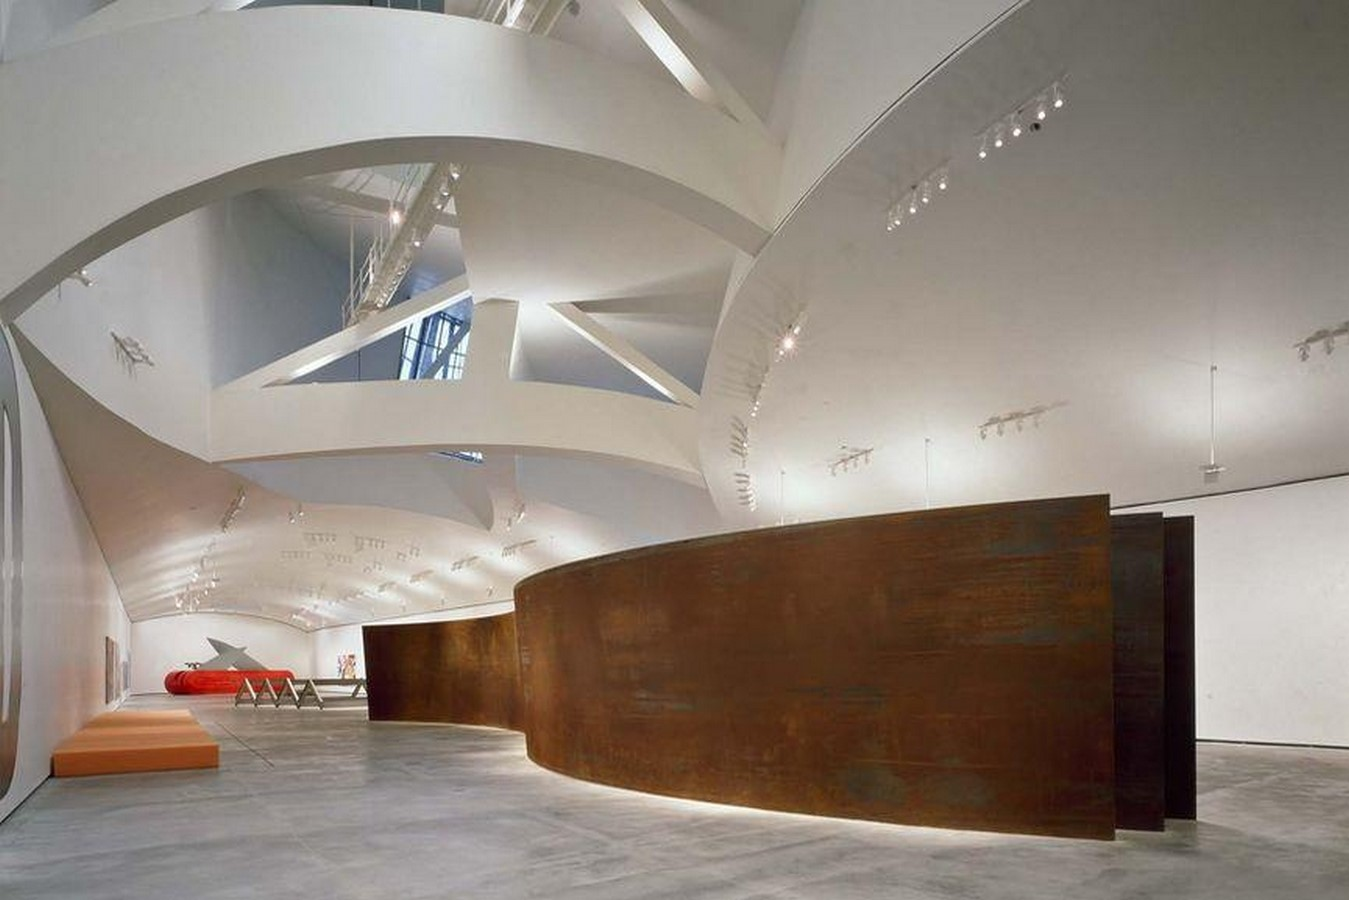 Art Gallery and Architecture: To experience art through architecture. - Sheet2